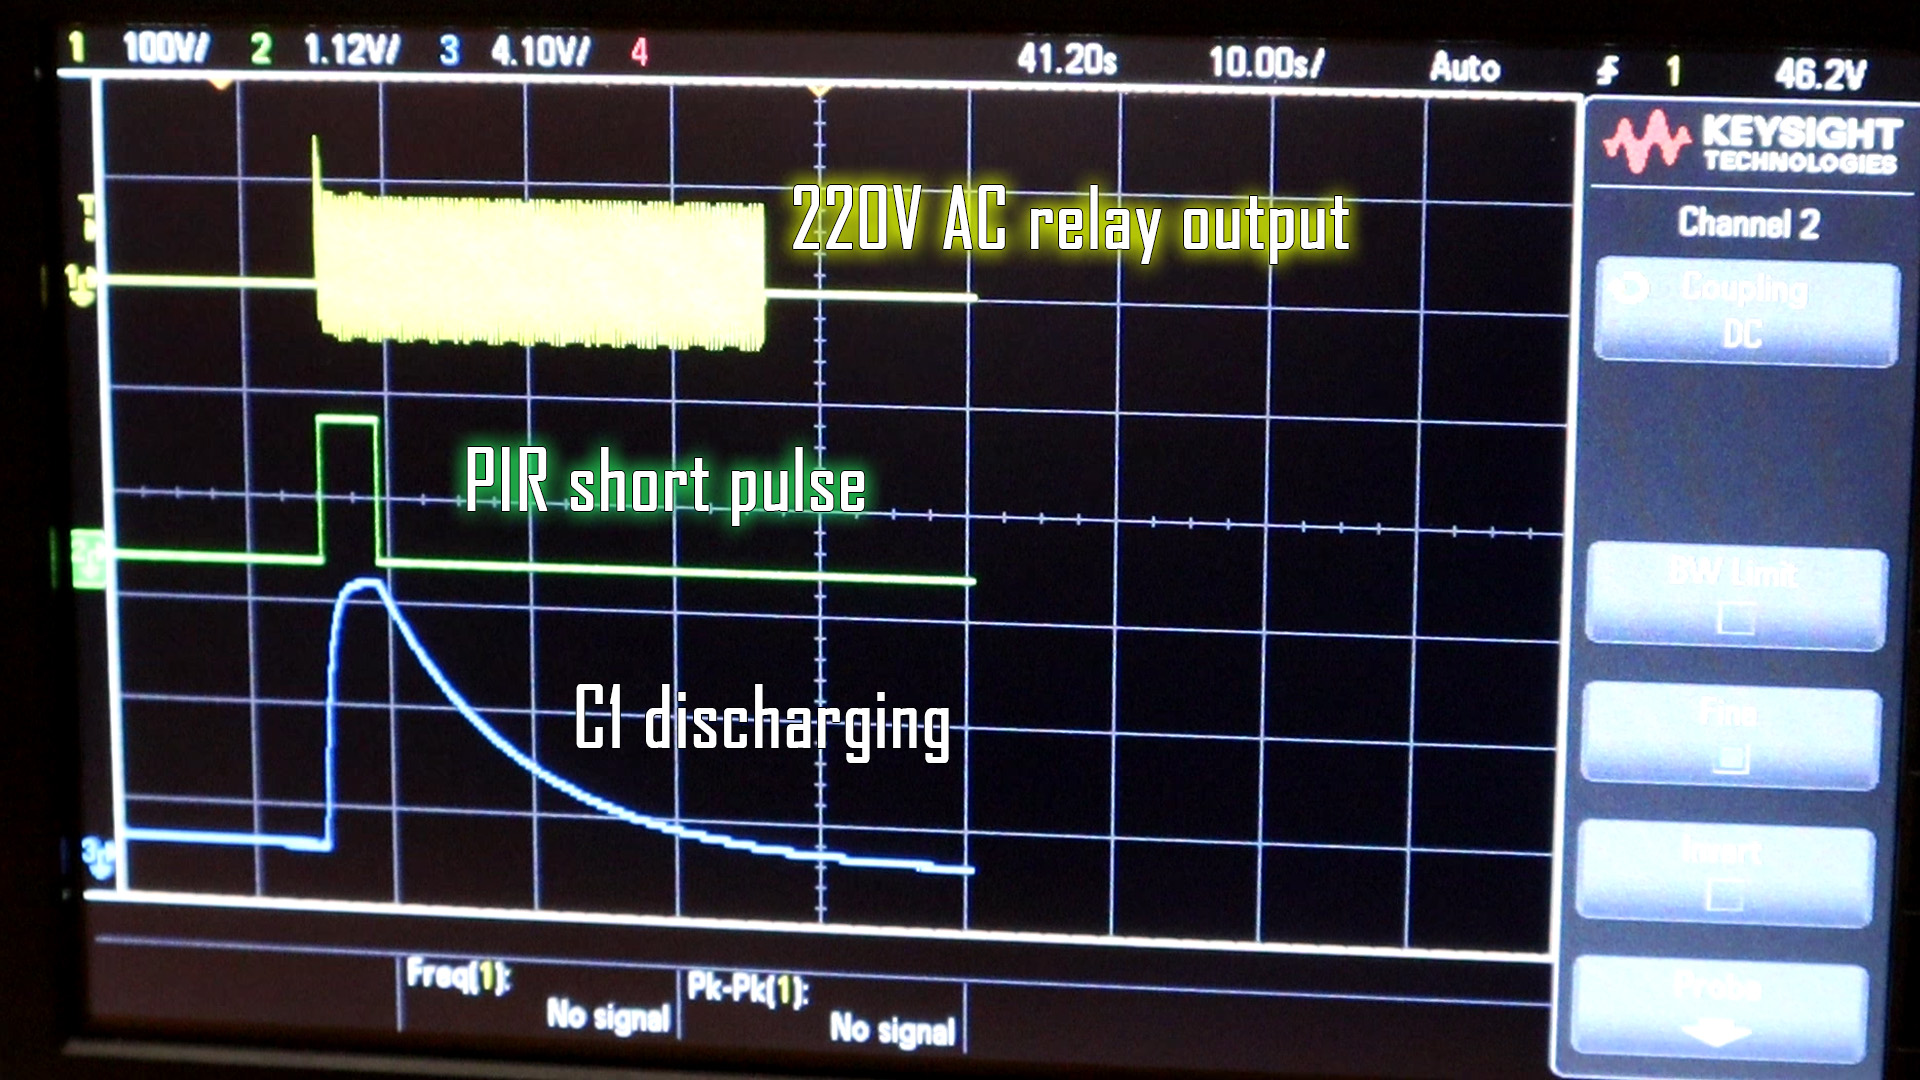 PIR delay infrared circuit detection